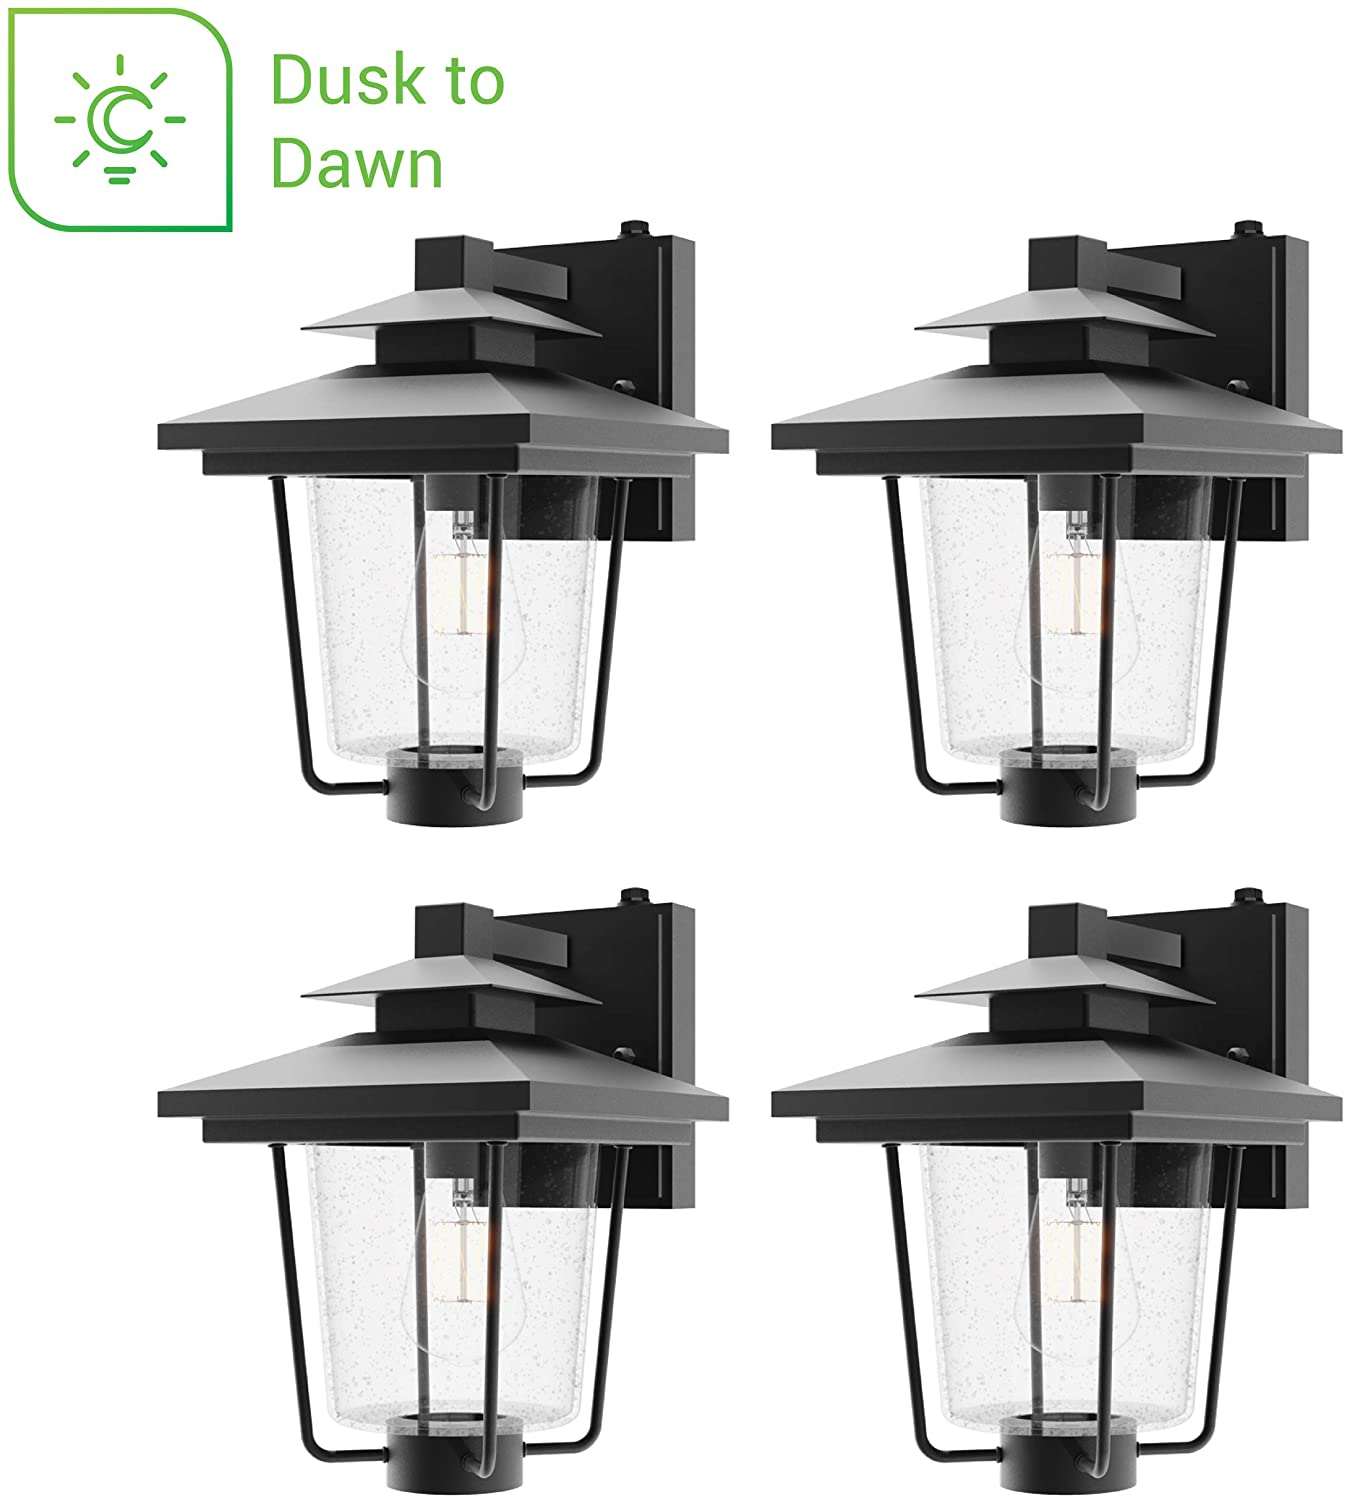 Sunco Lighting 4 Pack Cage Wall Sconce, Vintage Victorian Style, Matte Black, Seeded Glass Shade, Dusk-to-Dawn Photocell Sensor, E26 Base, Outdoor Lantern, Waterproof, Suitable for Porch, Patio